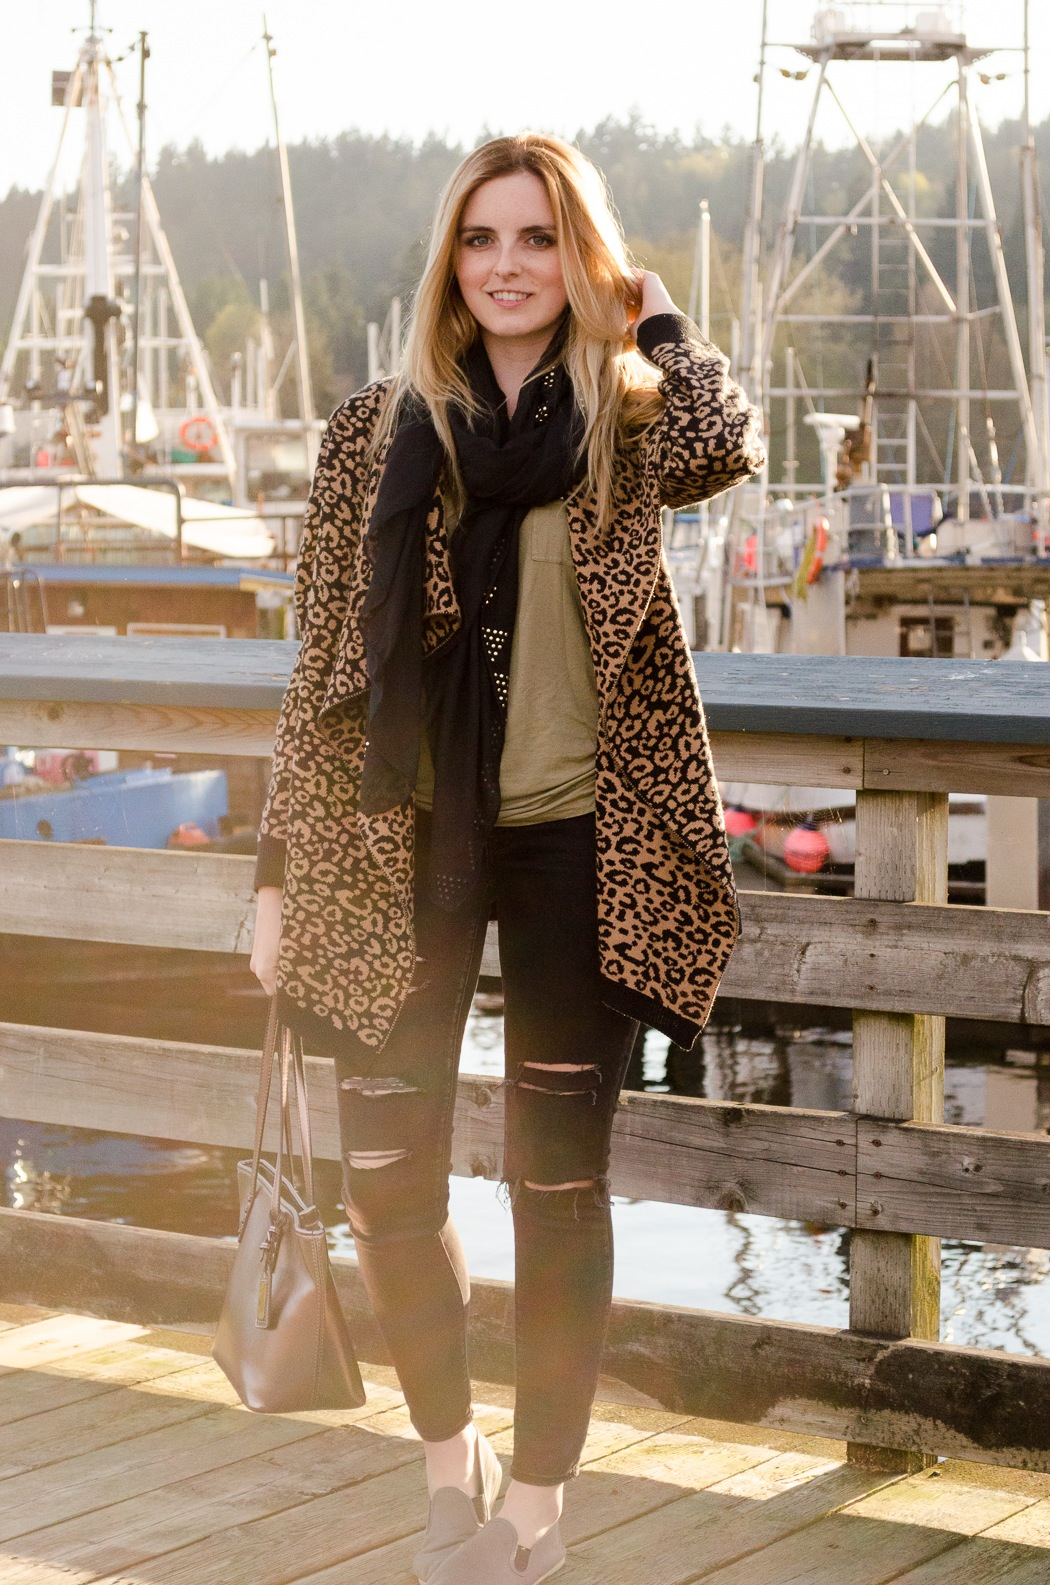 Vancouver Style Blog, Vancouver Fashion Blog, Vancouver Travel Blog, Canadian Fashion Blog, How to Style a Oversized Knit Sweater, American Eagle Torn Black Jeggings